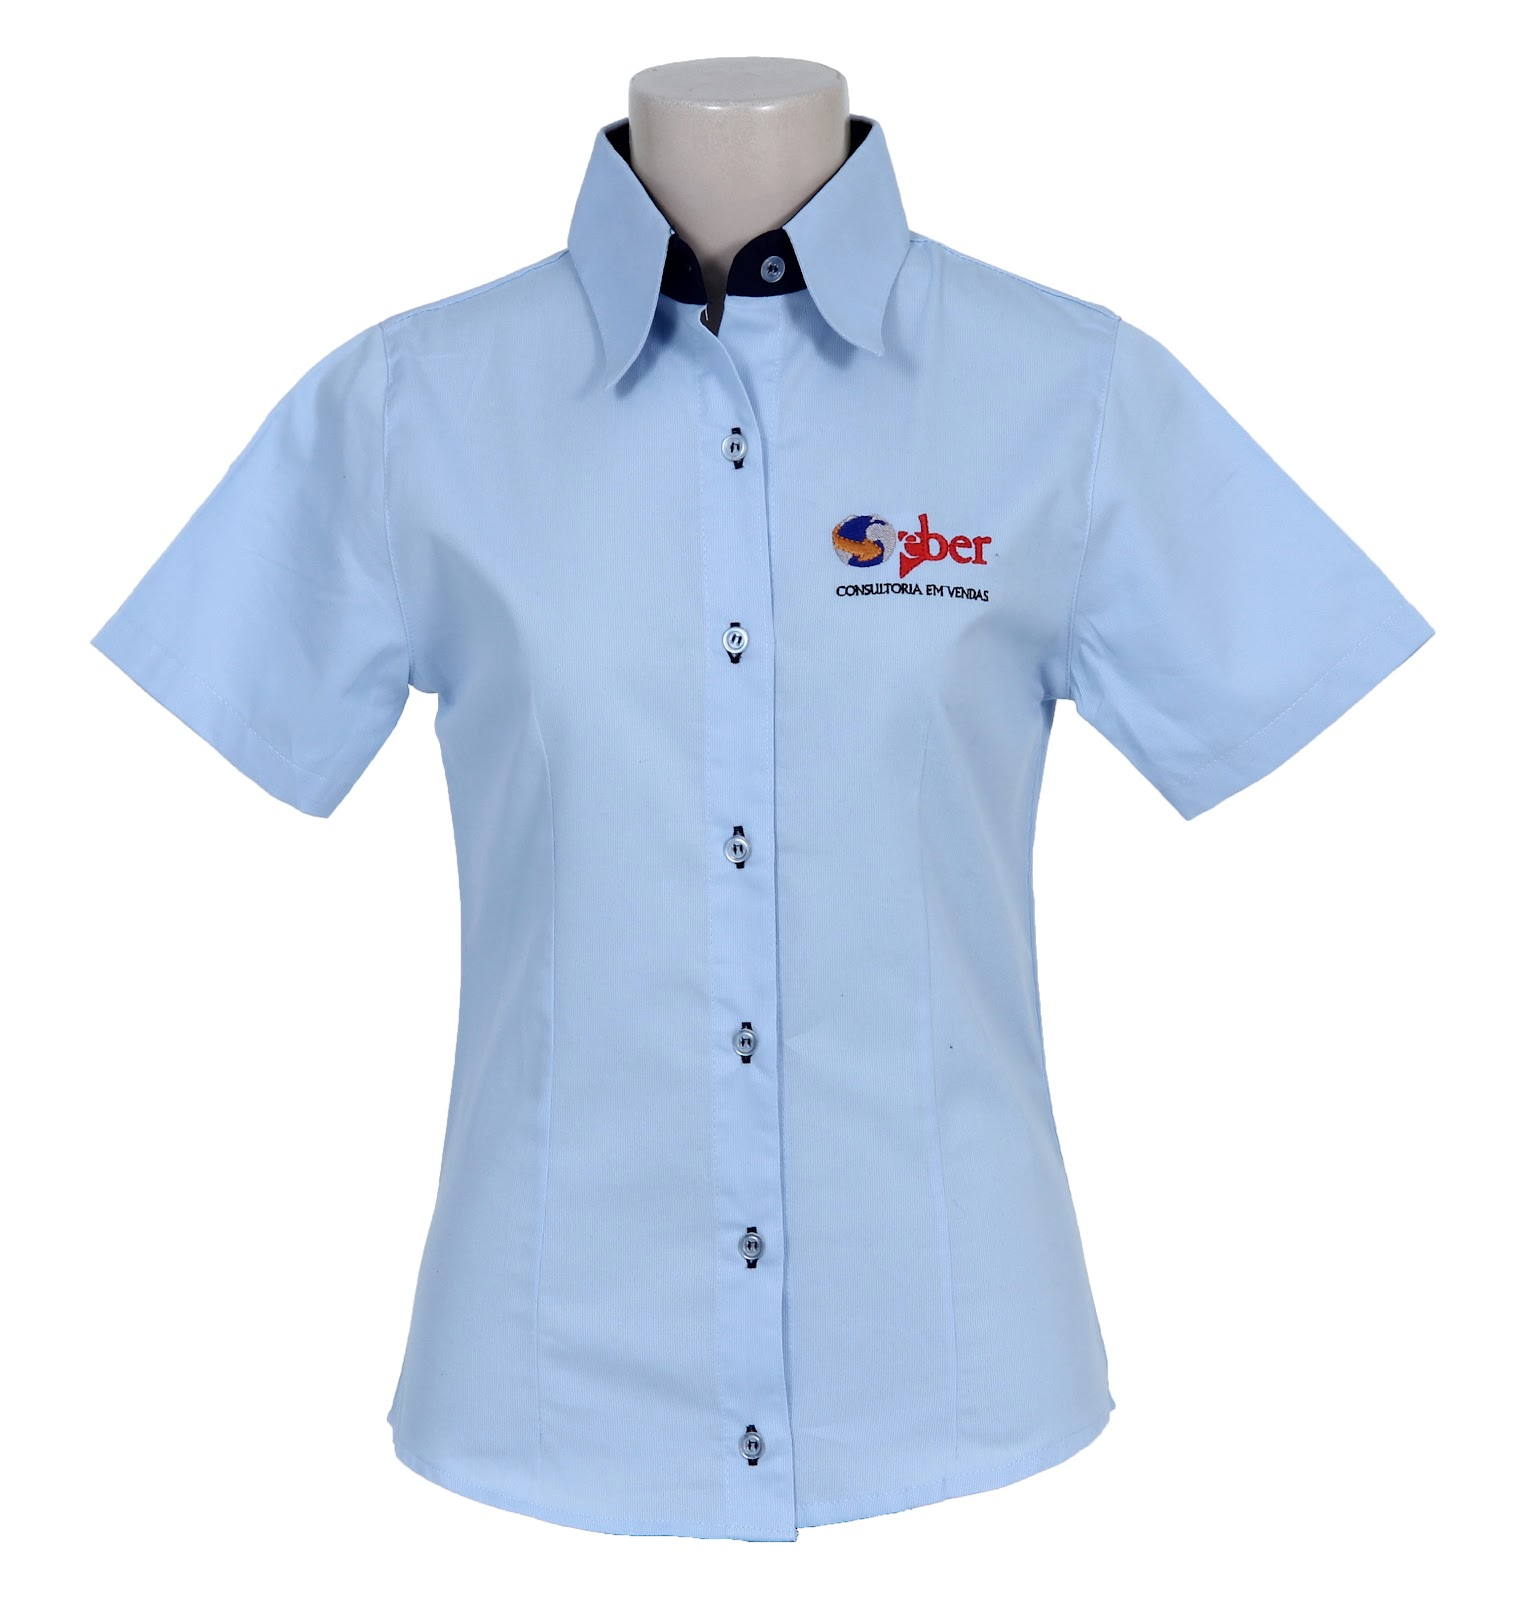 Search Results Pligg Ropa - autoforextradingsoftware.com